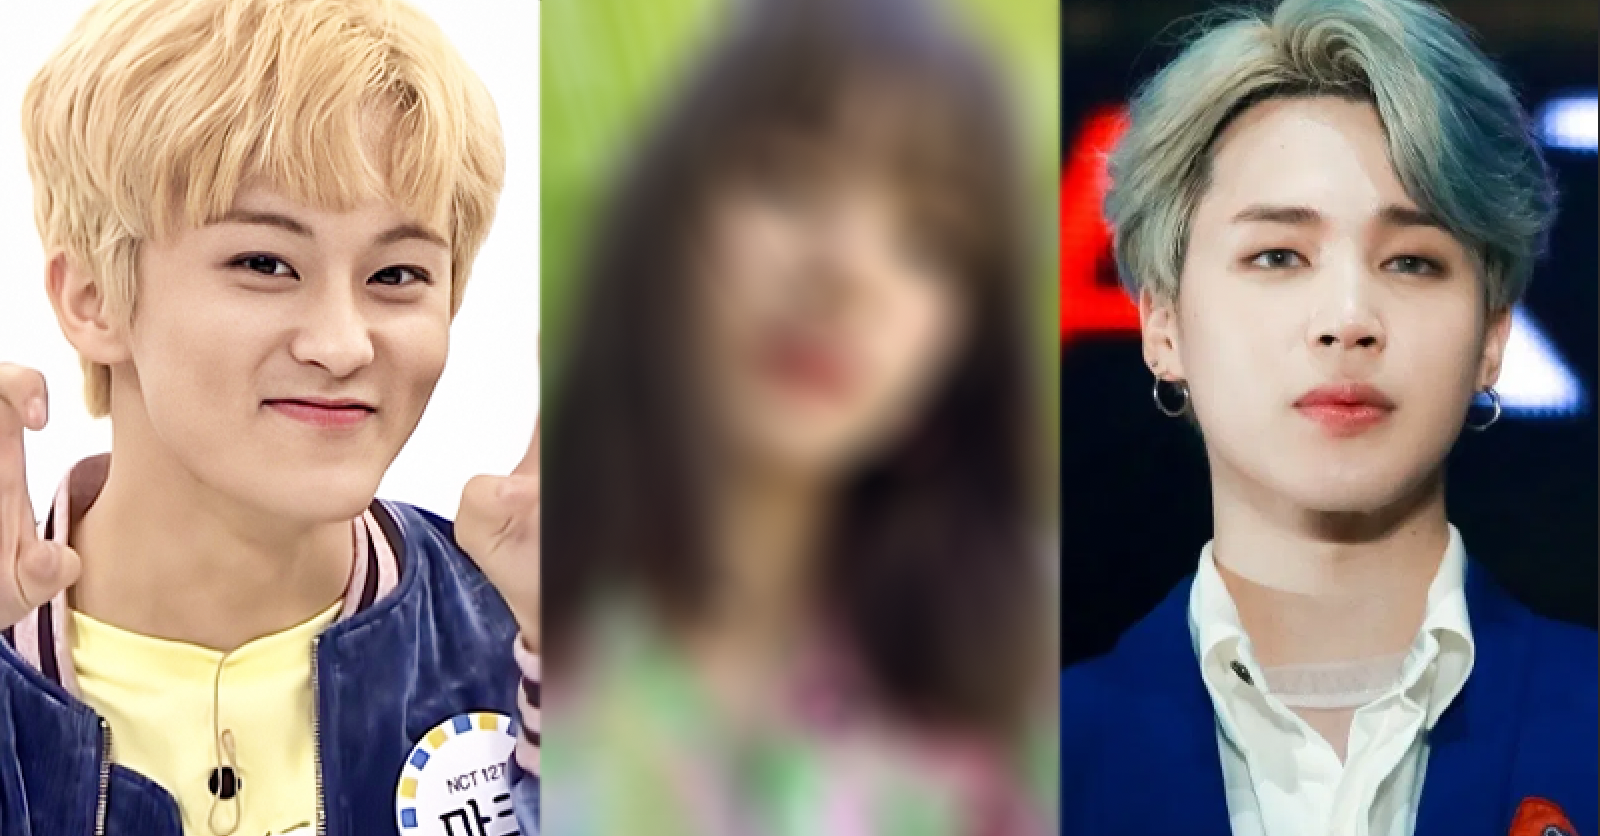 Top 15 K-Pop Instagram Accounts That Gained Most Followers in July 2021